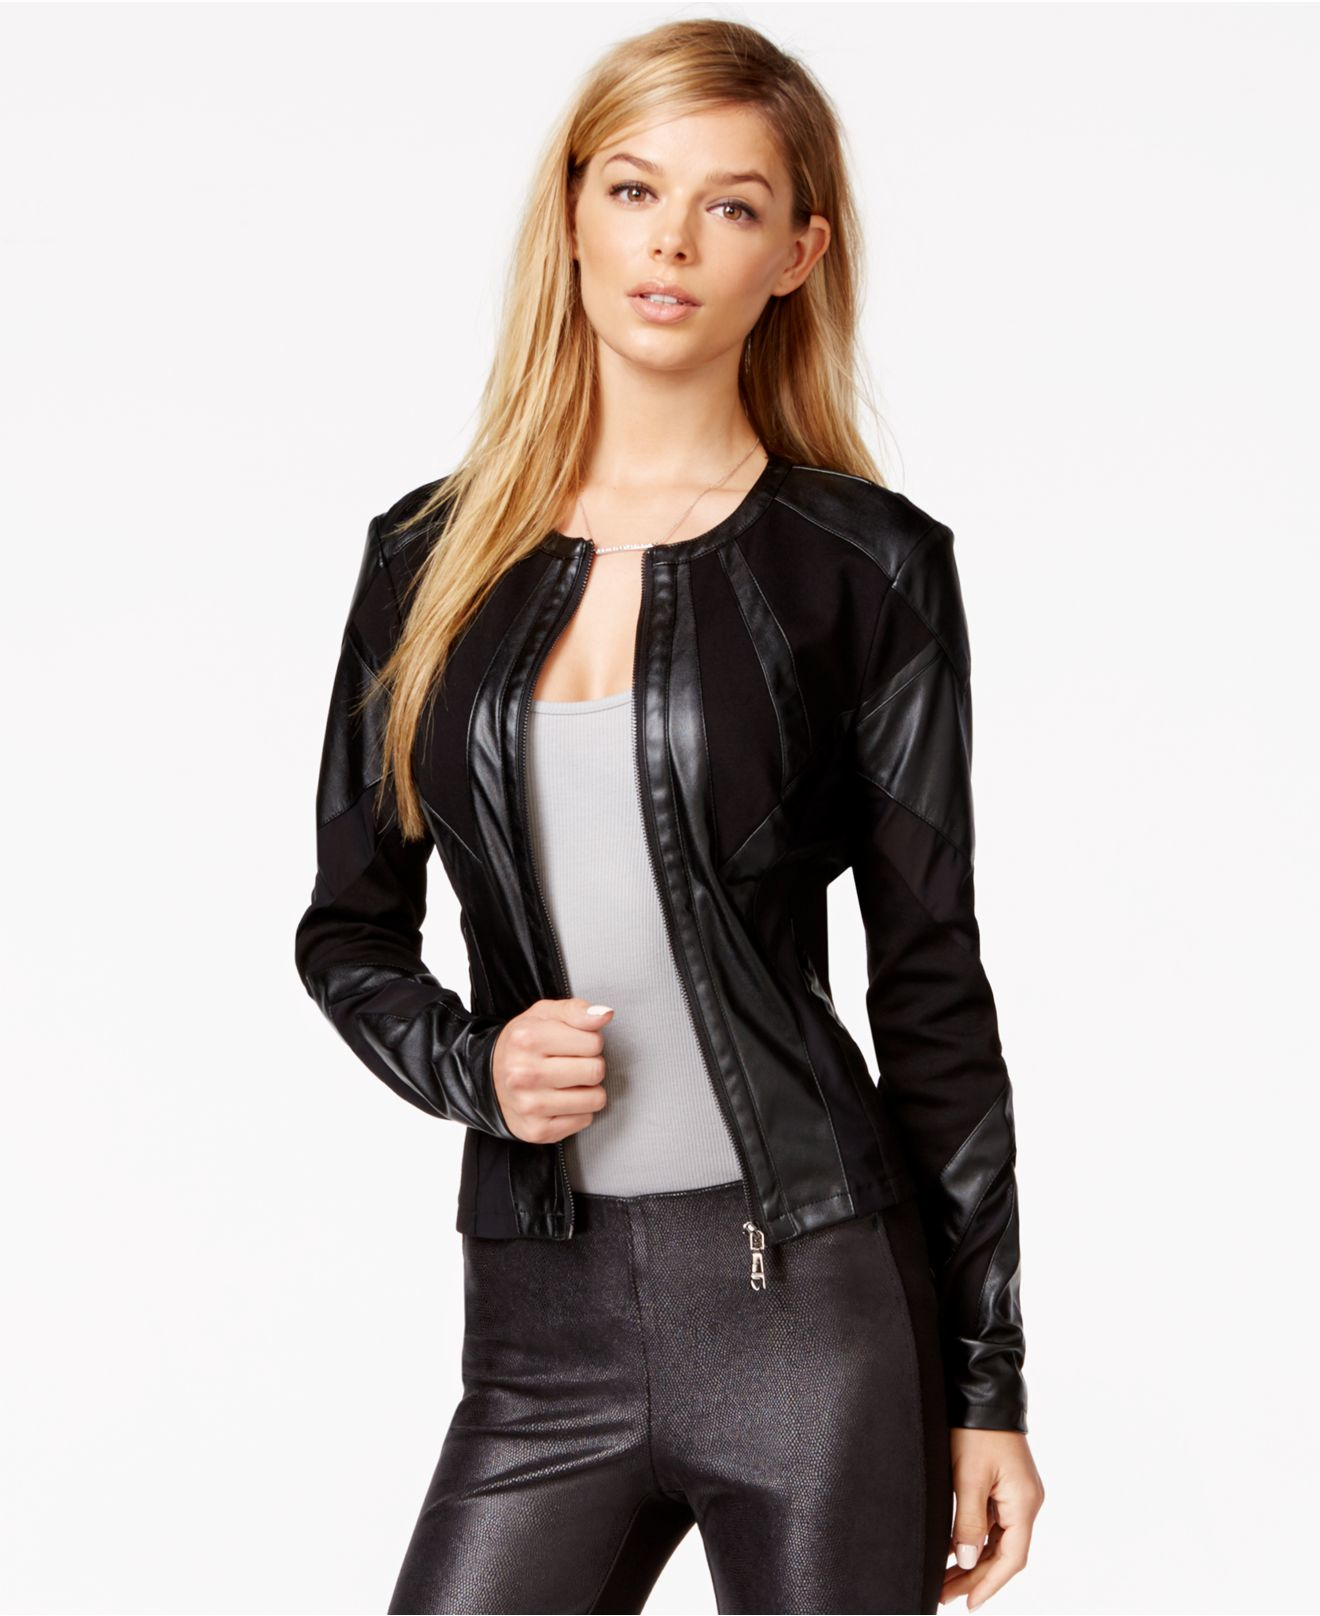 Guess jacket women